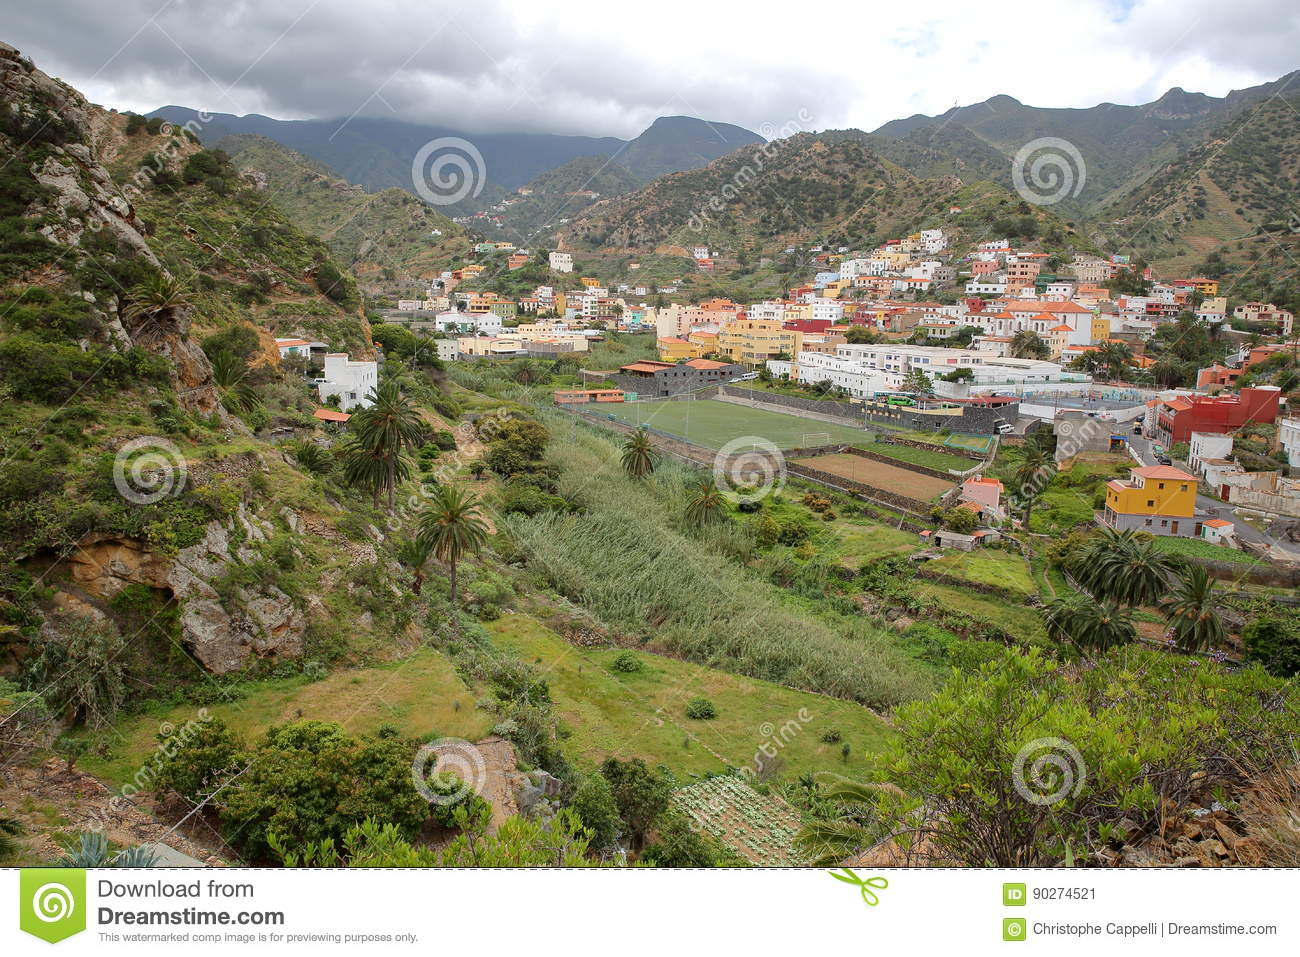 VALLEHERMOSO, LA GOMERA, SPAIN: General view of the valley with terraced fields and mountains